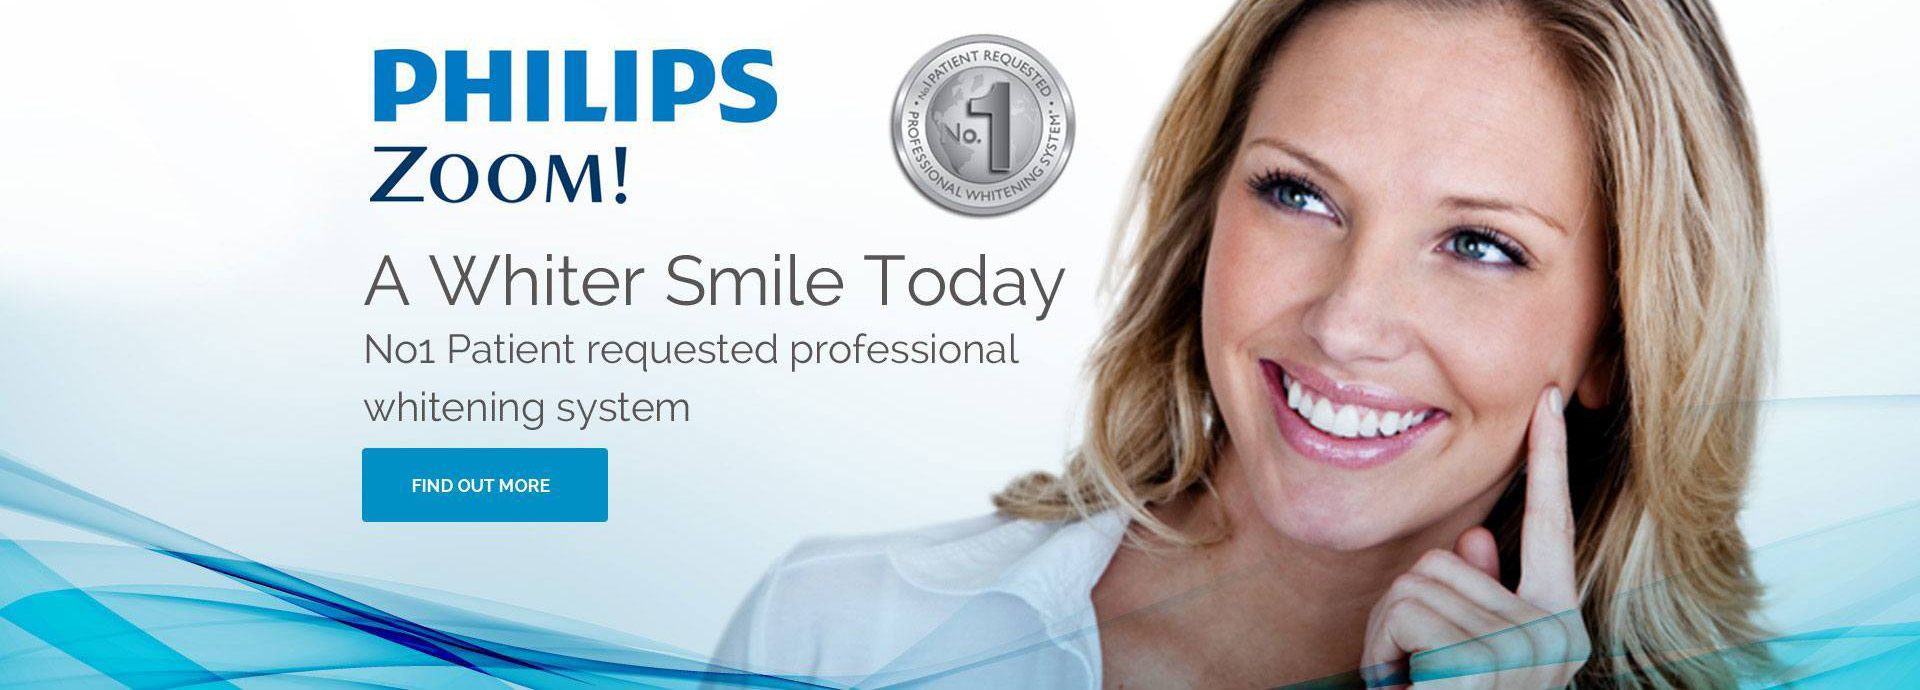 philips-zoom-tooth- whitening-in-london - NW1 Dental Care